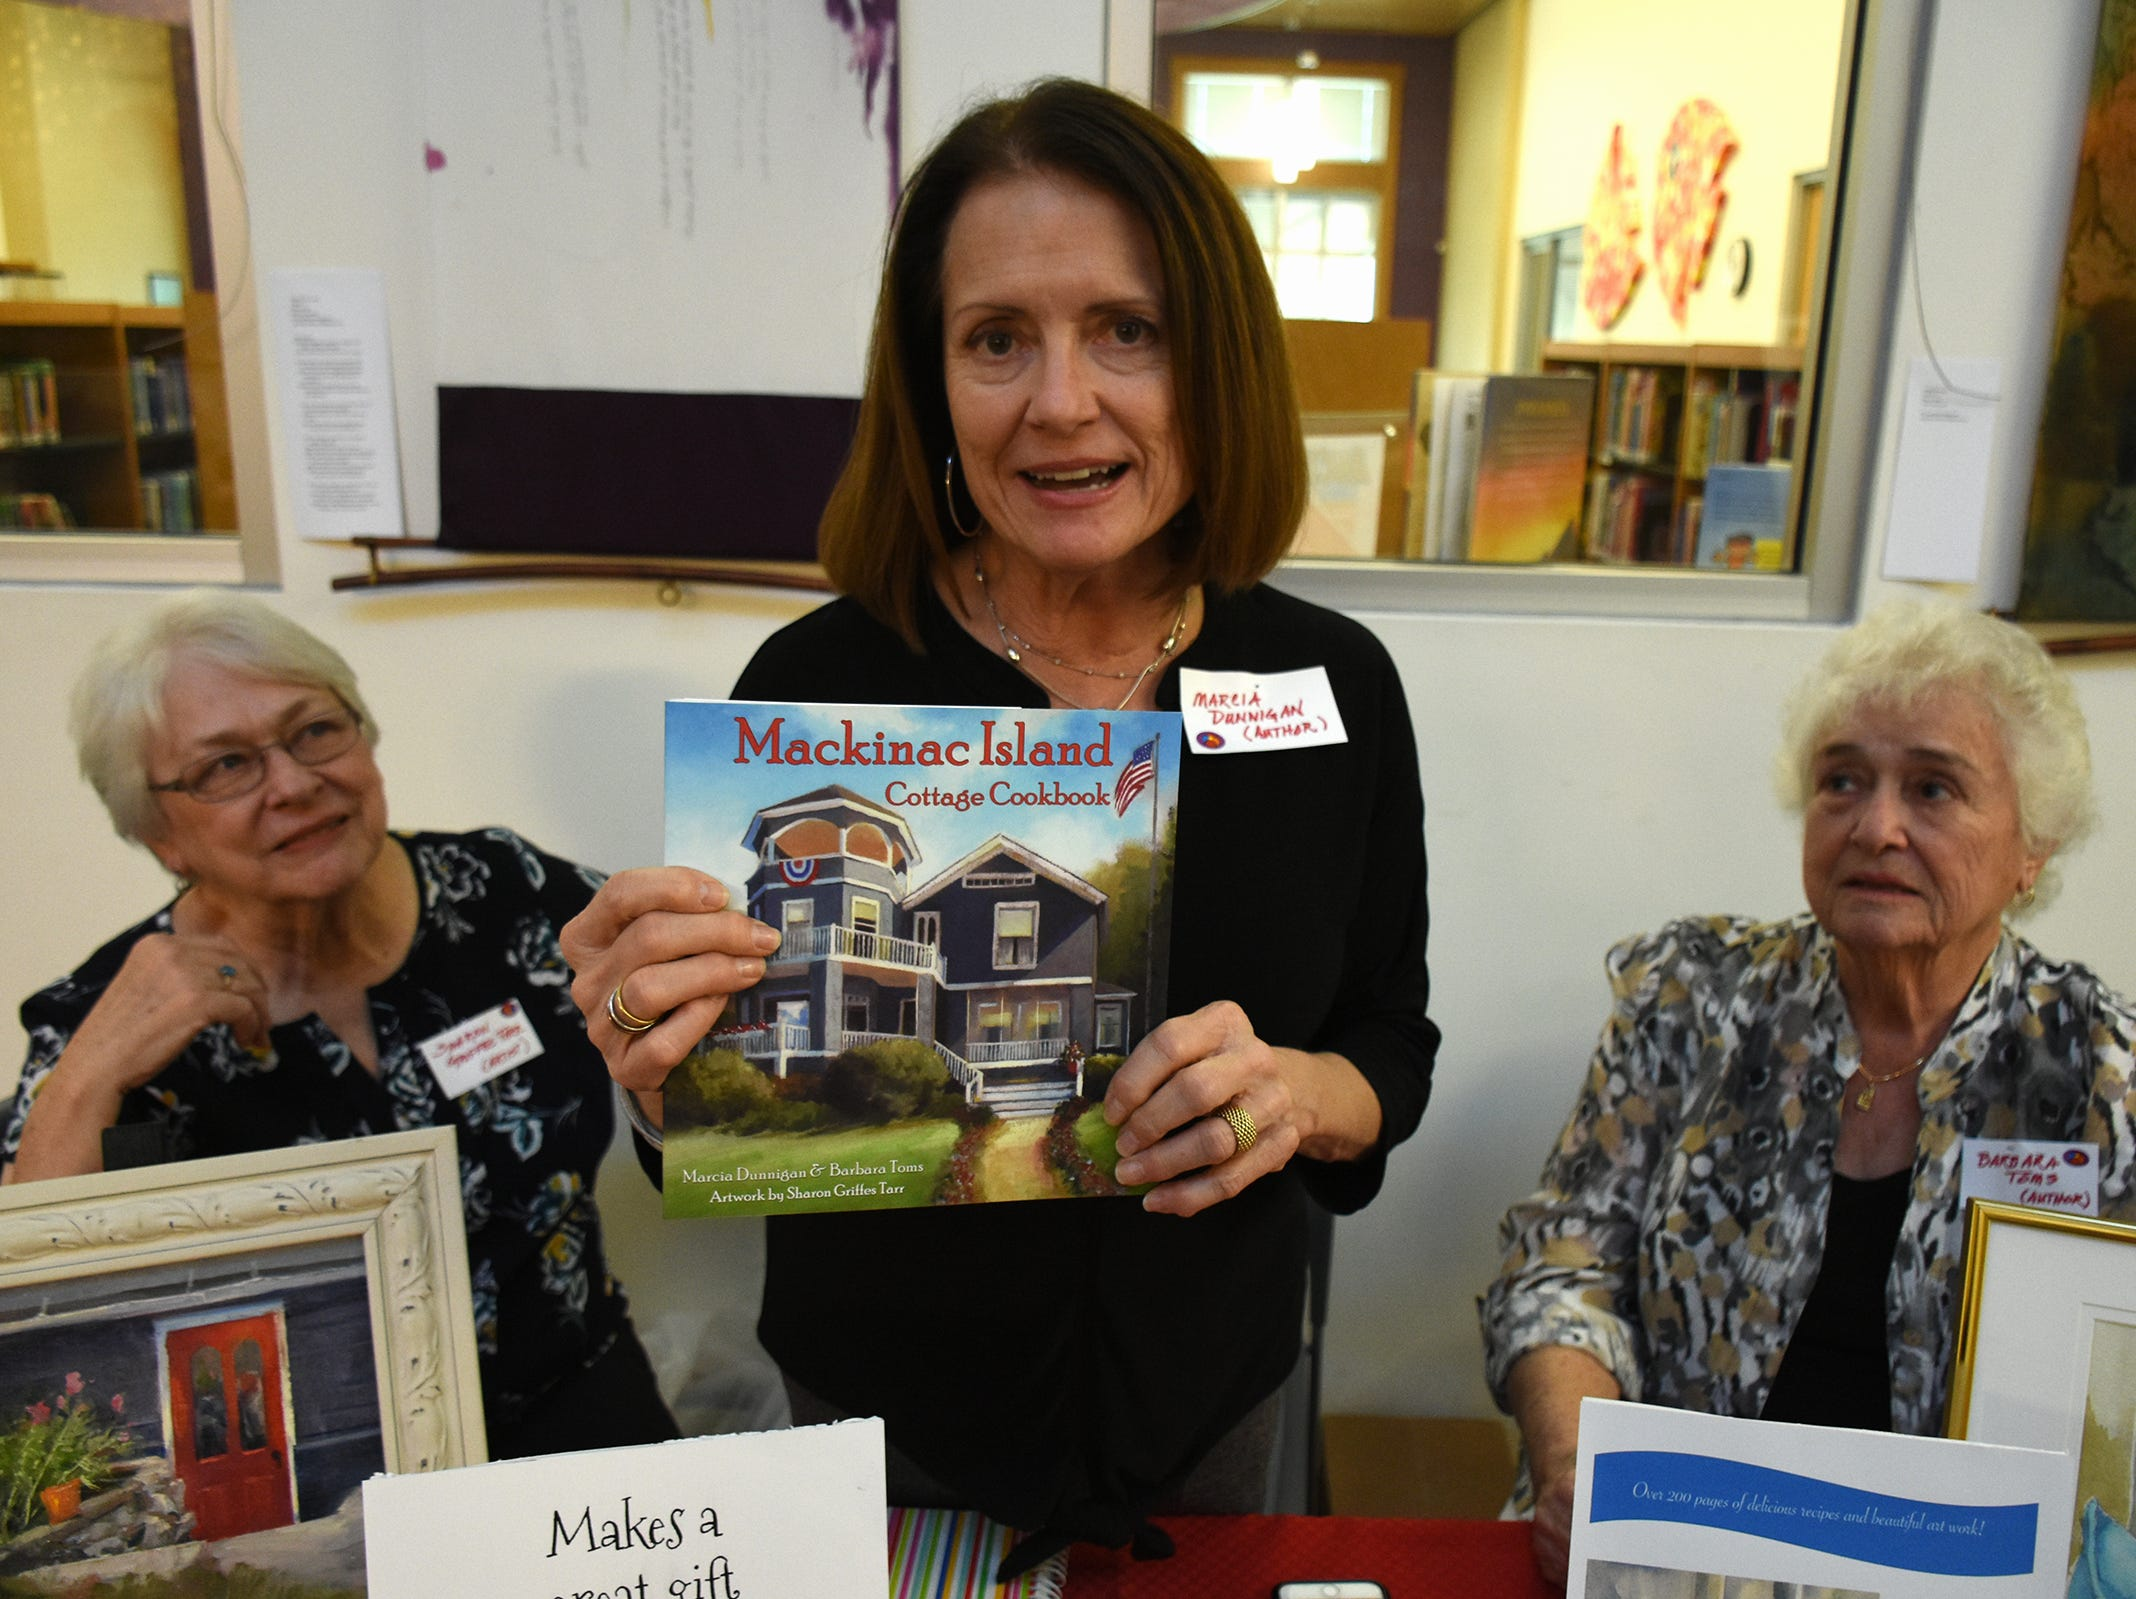 Family members Marcia Dunnigan, center, Barbara Toms, and Sharon Griffen Tarr collaborated on this cookbook. The Collier County public library system hosted an author fair Saturday at the South Regional library branch, with nearly four dozen local writers and talks from two eminent authors.